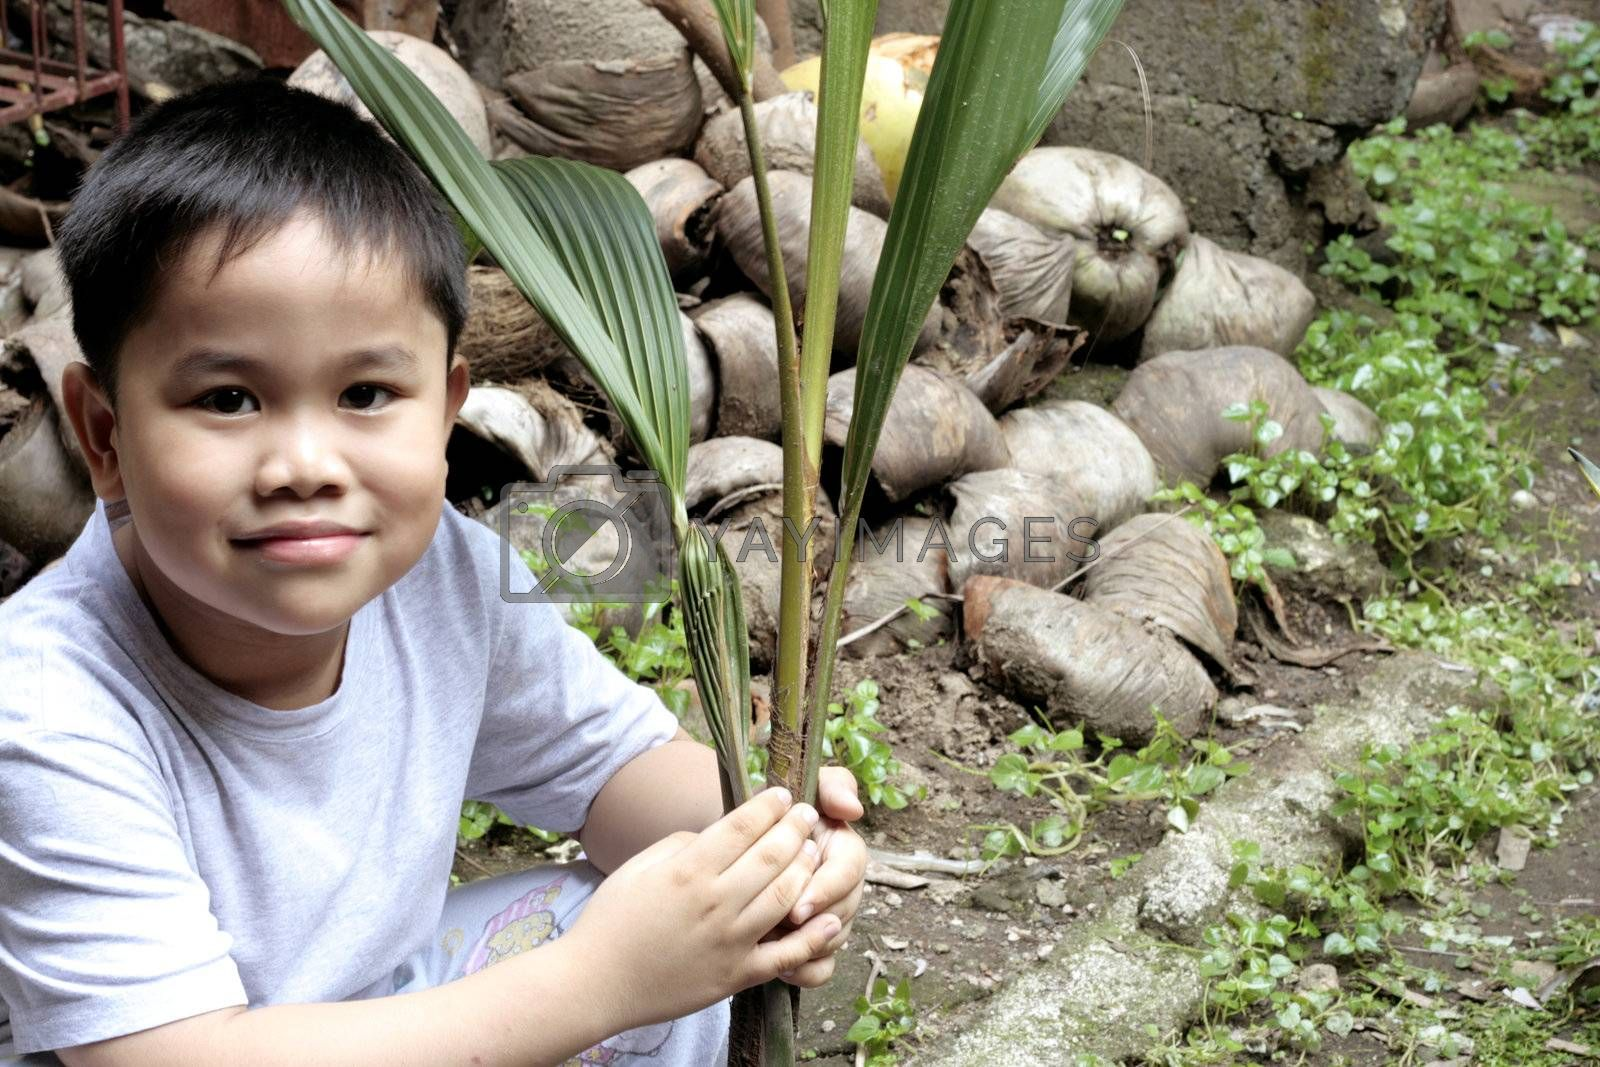 Child Holding a Coconut Seedling - metaphor for investment and future